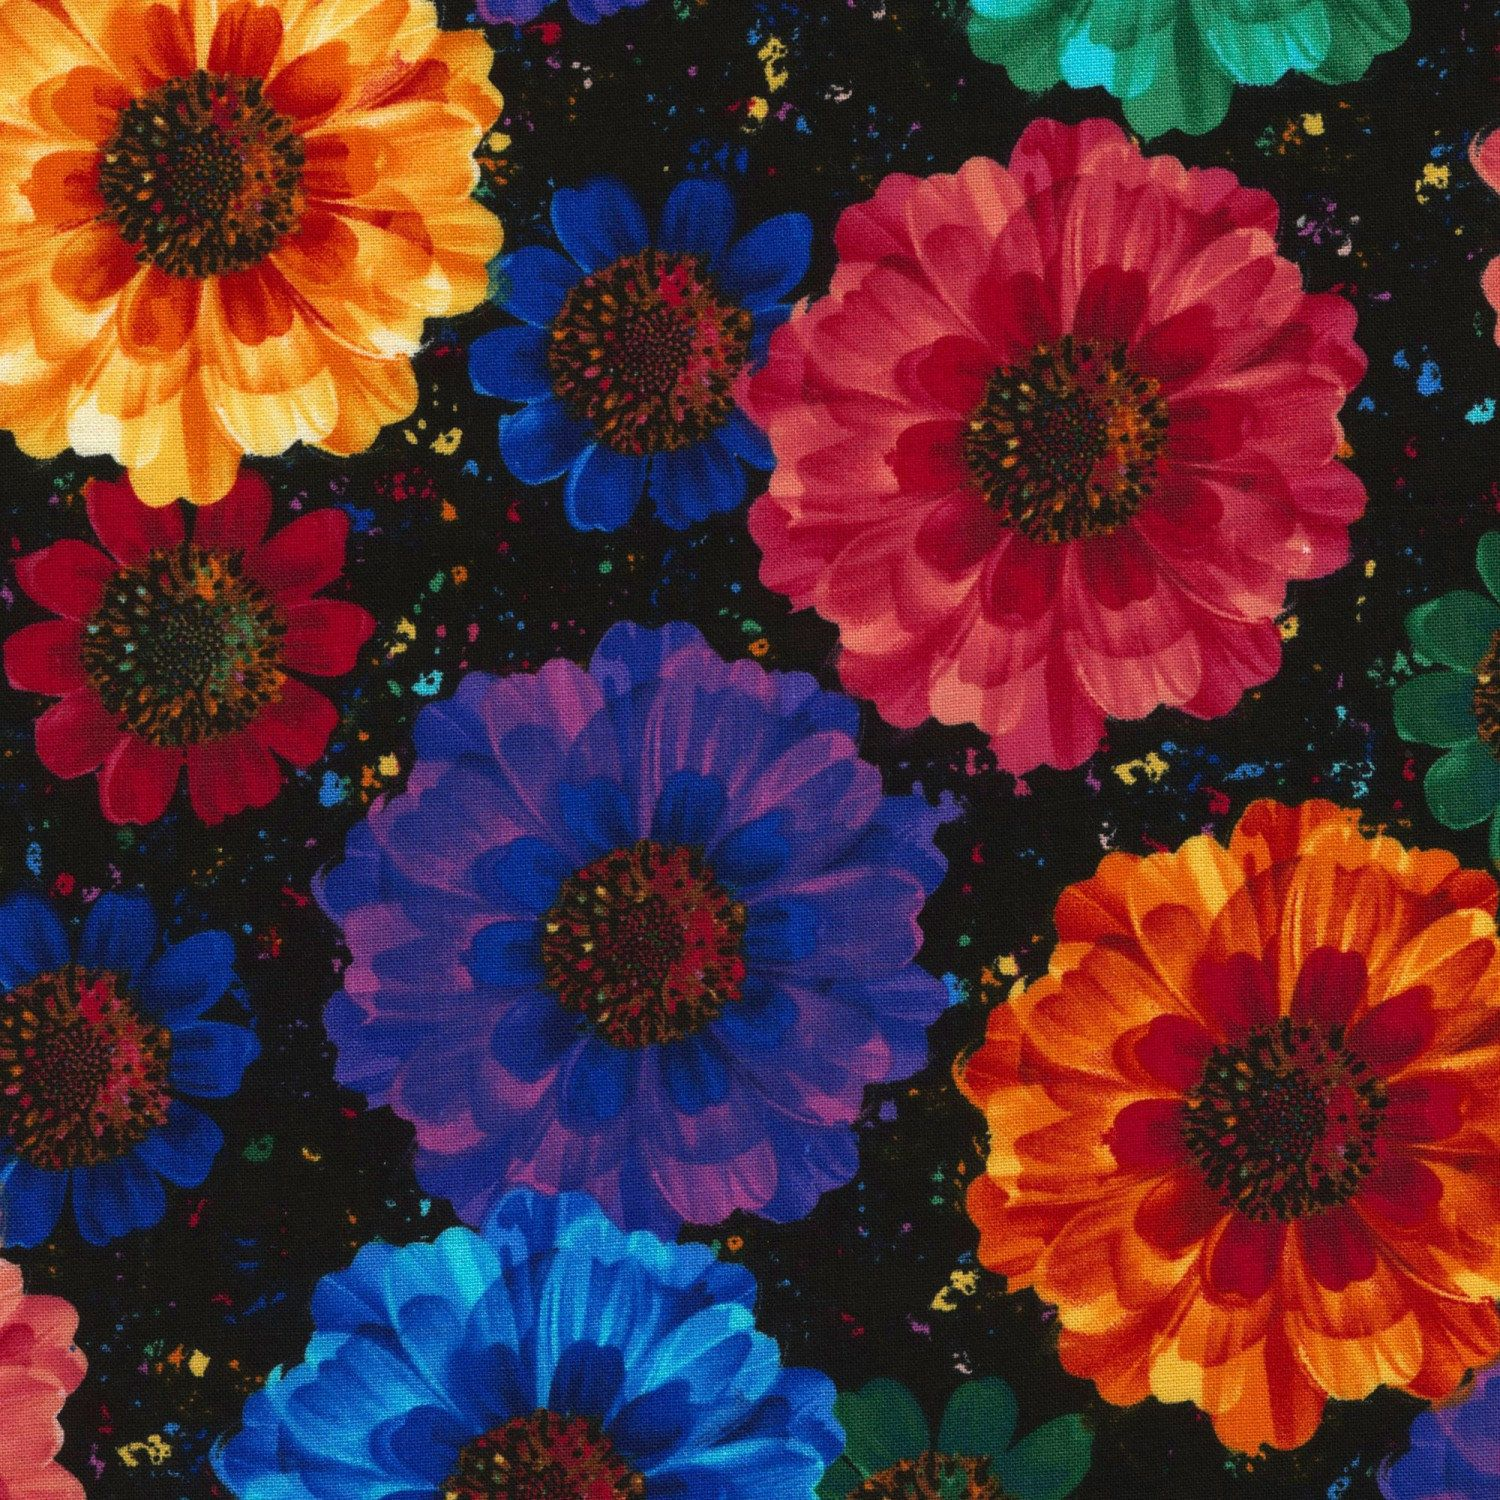 Floral Fabric, Radiance, multi colored flowers, Large Floral Fabric ...